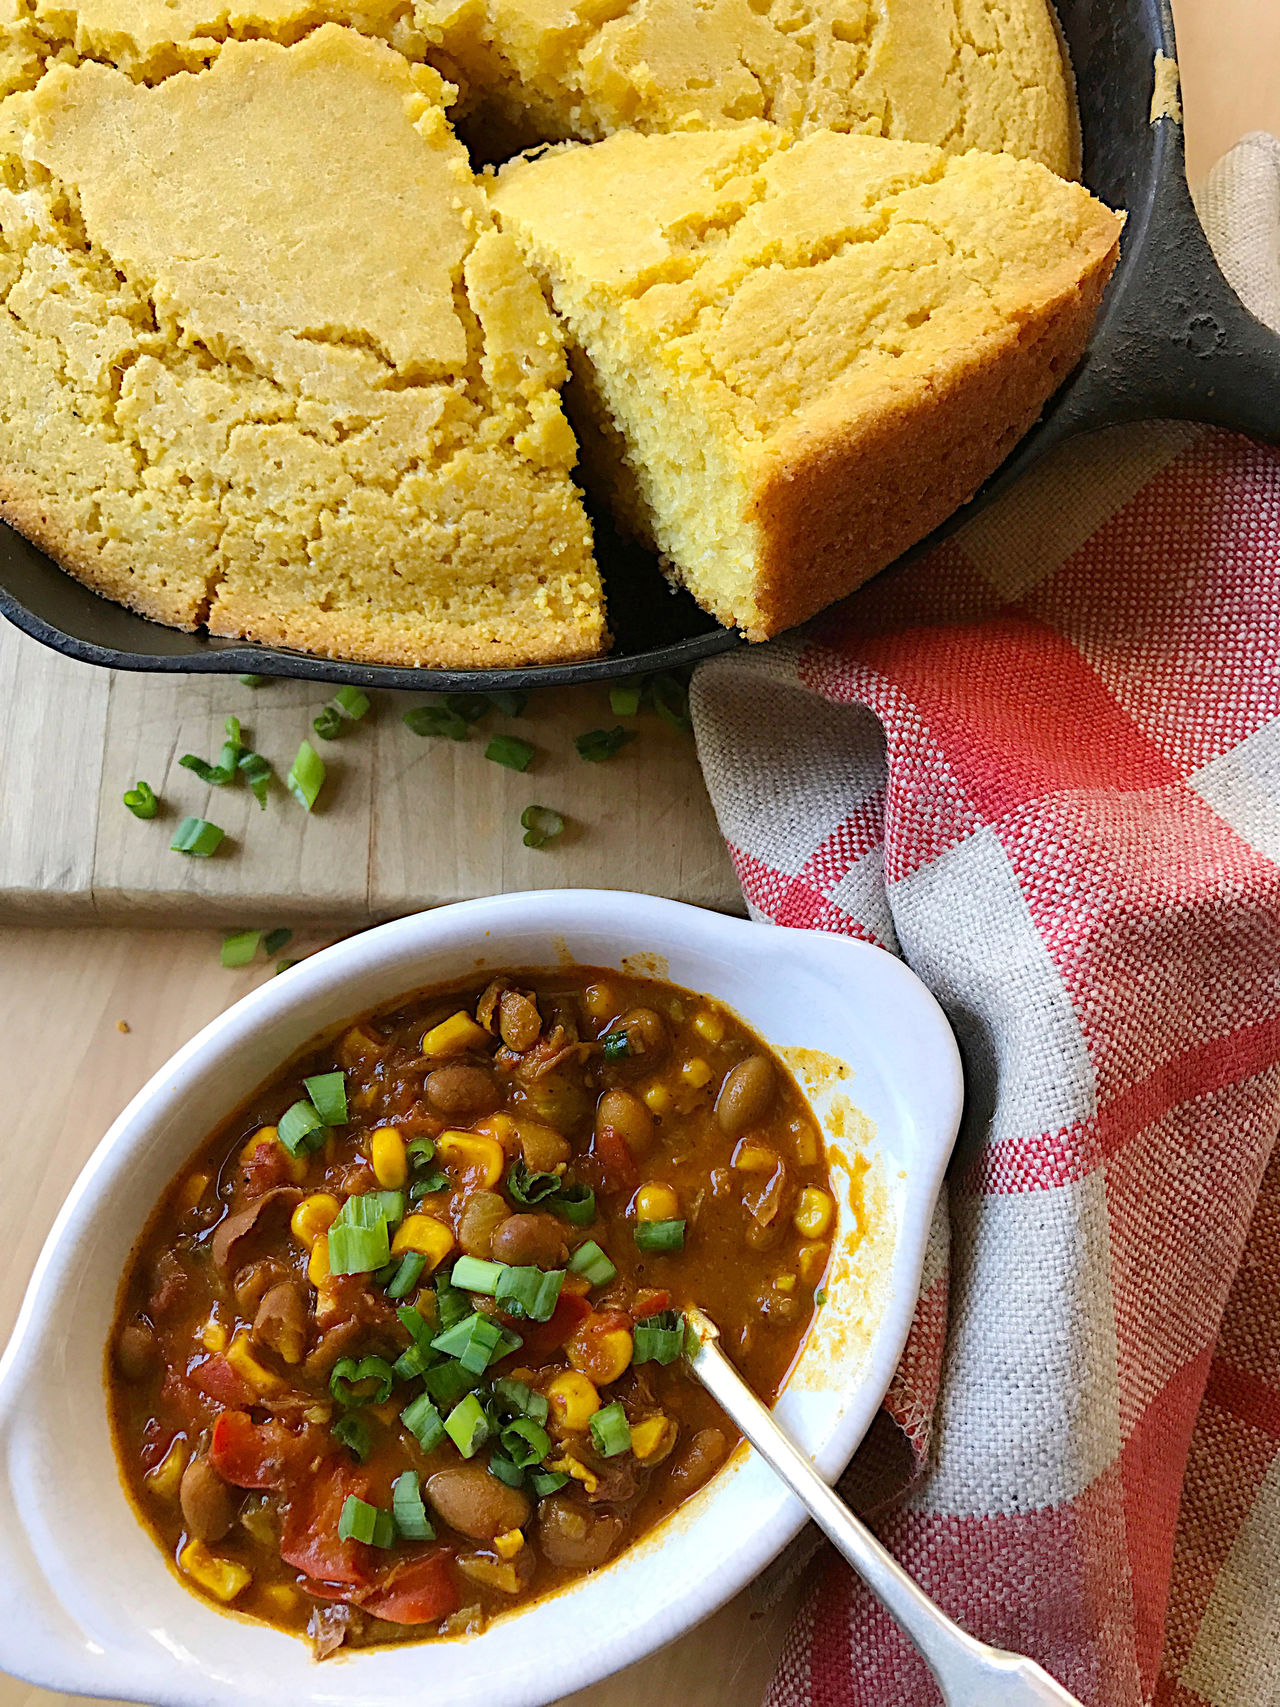 American Food Bowl Cast Iron Skillet Chili  Colorful Cornbread Cutting Board Day Dinner Home Cooking Indoors  Lunch Meal Meal Napkin Natural Light No People Phone Camera Red Savory Food Spoon Supper Textures Wood Surface Yellow